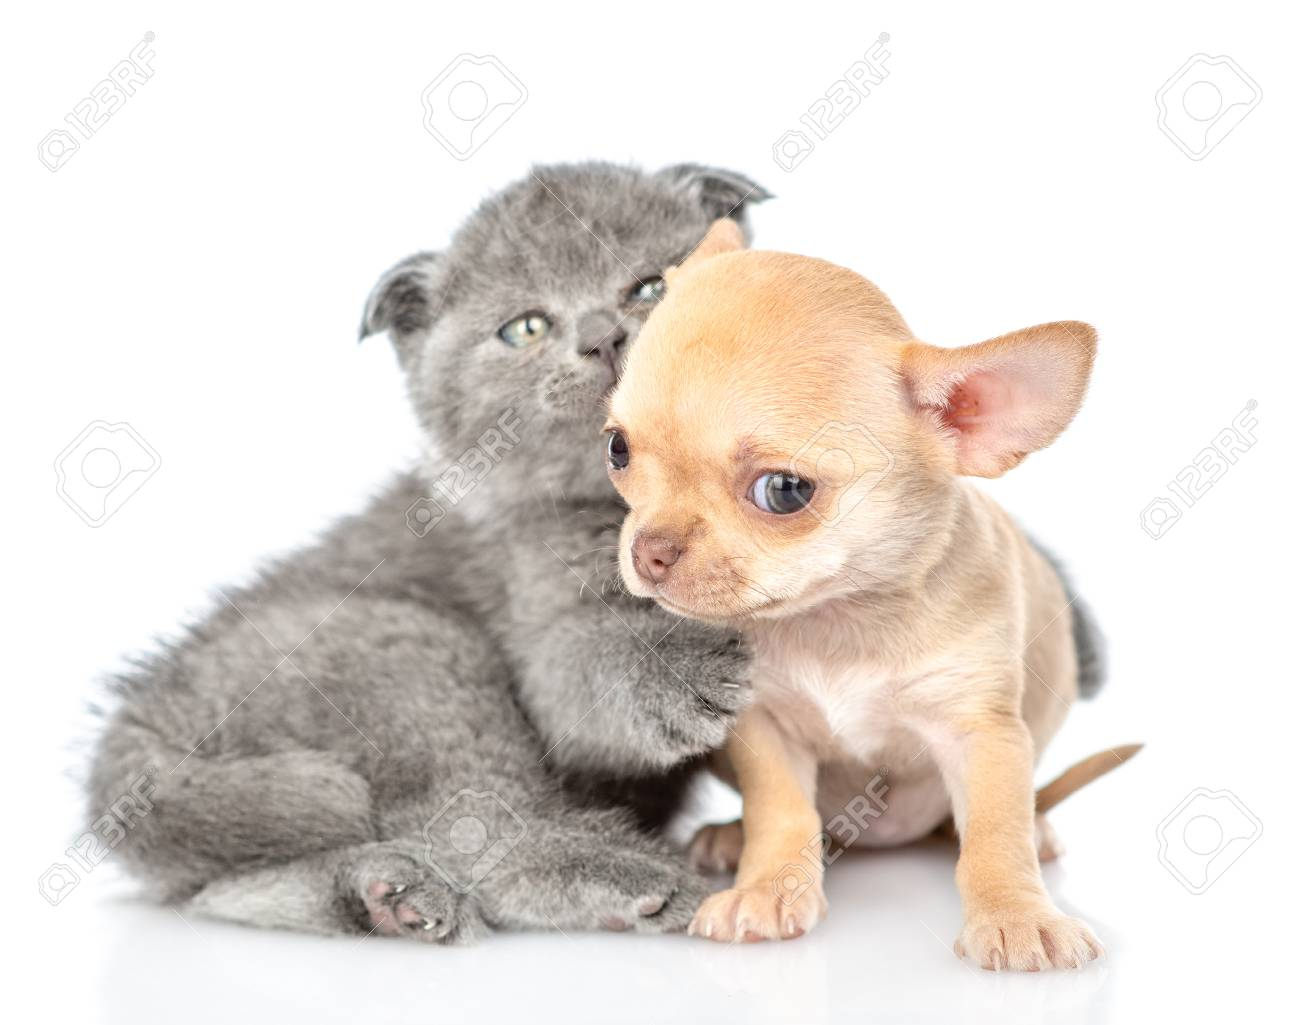 Playful Baby Kitten And Tiny Chihuahua Puppy Together Isolated Stock Photo Picture And Royalty Free Image Image 119573448